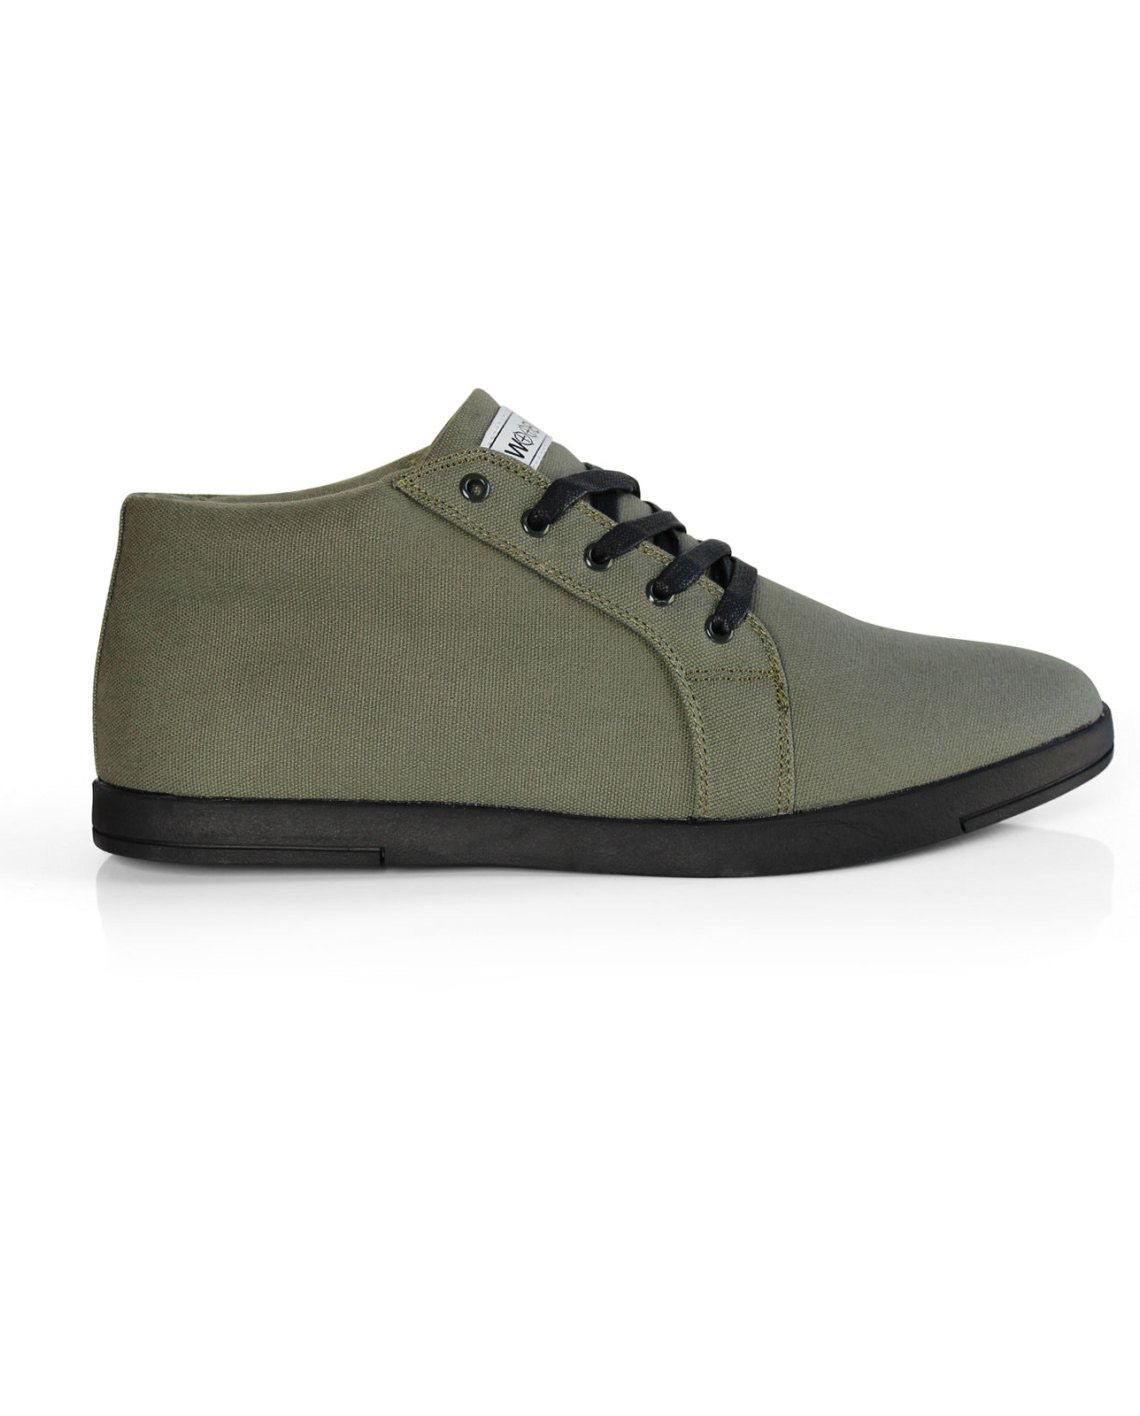 76a7446bc4 Woobies shoes - OD Green 7.62